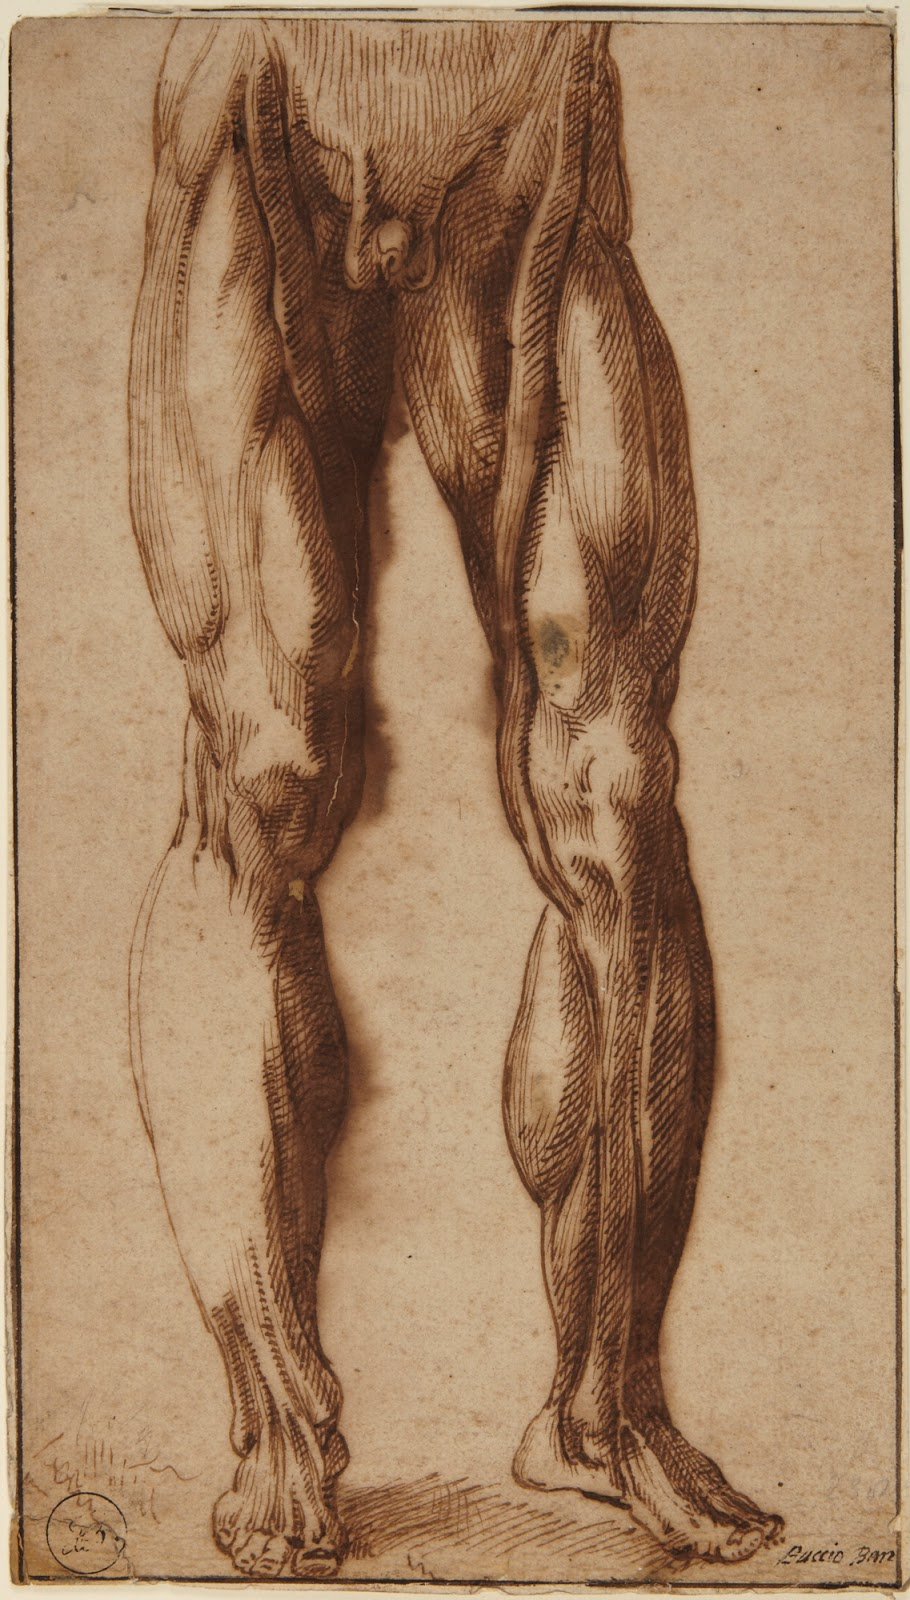 Spencer Alley: Anatomy by and for Artists